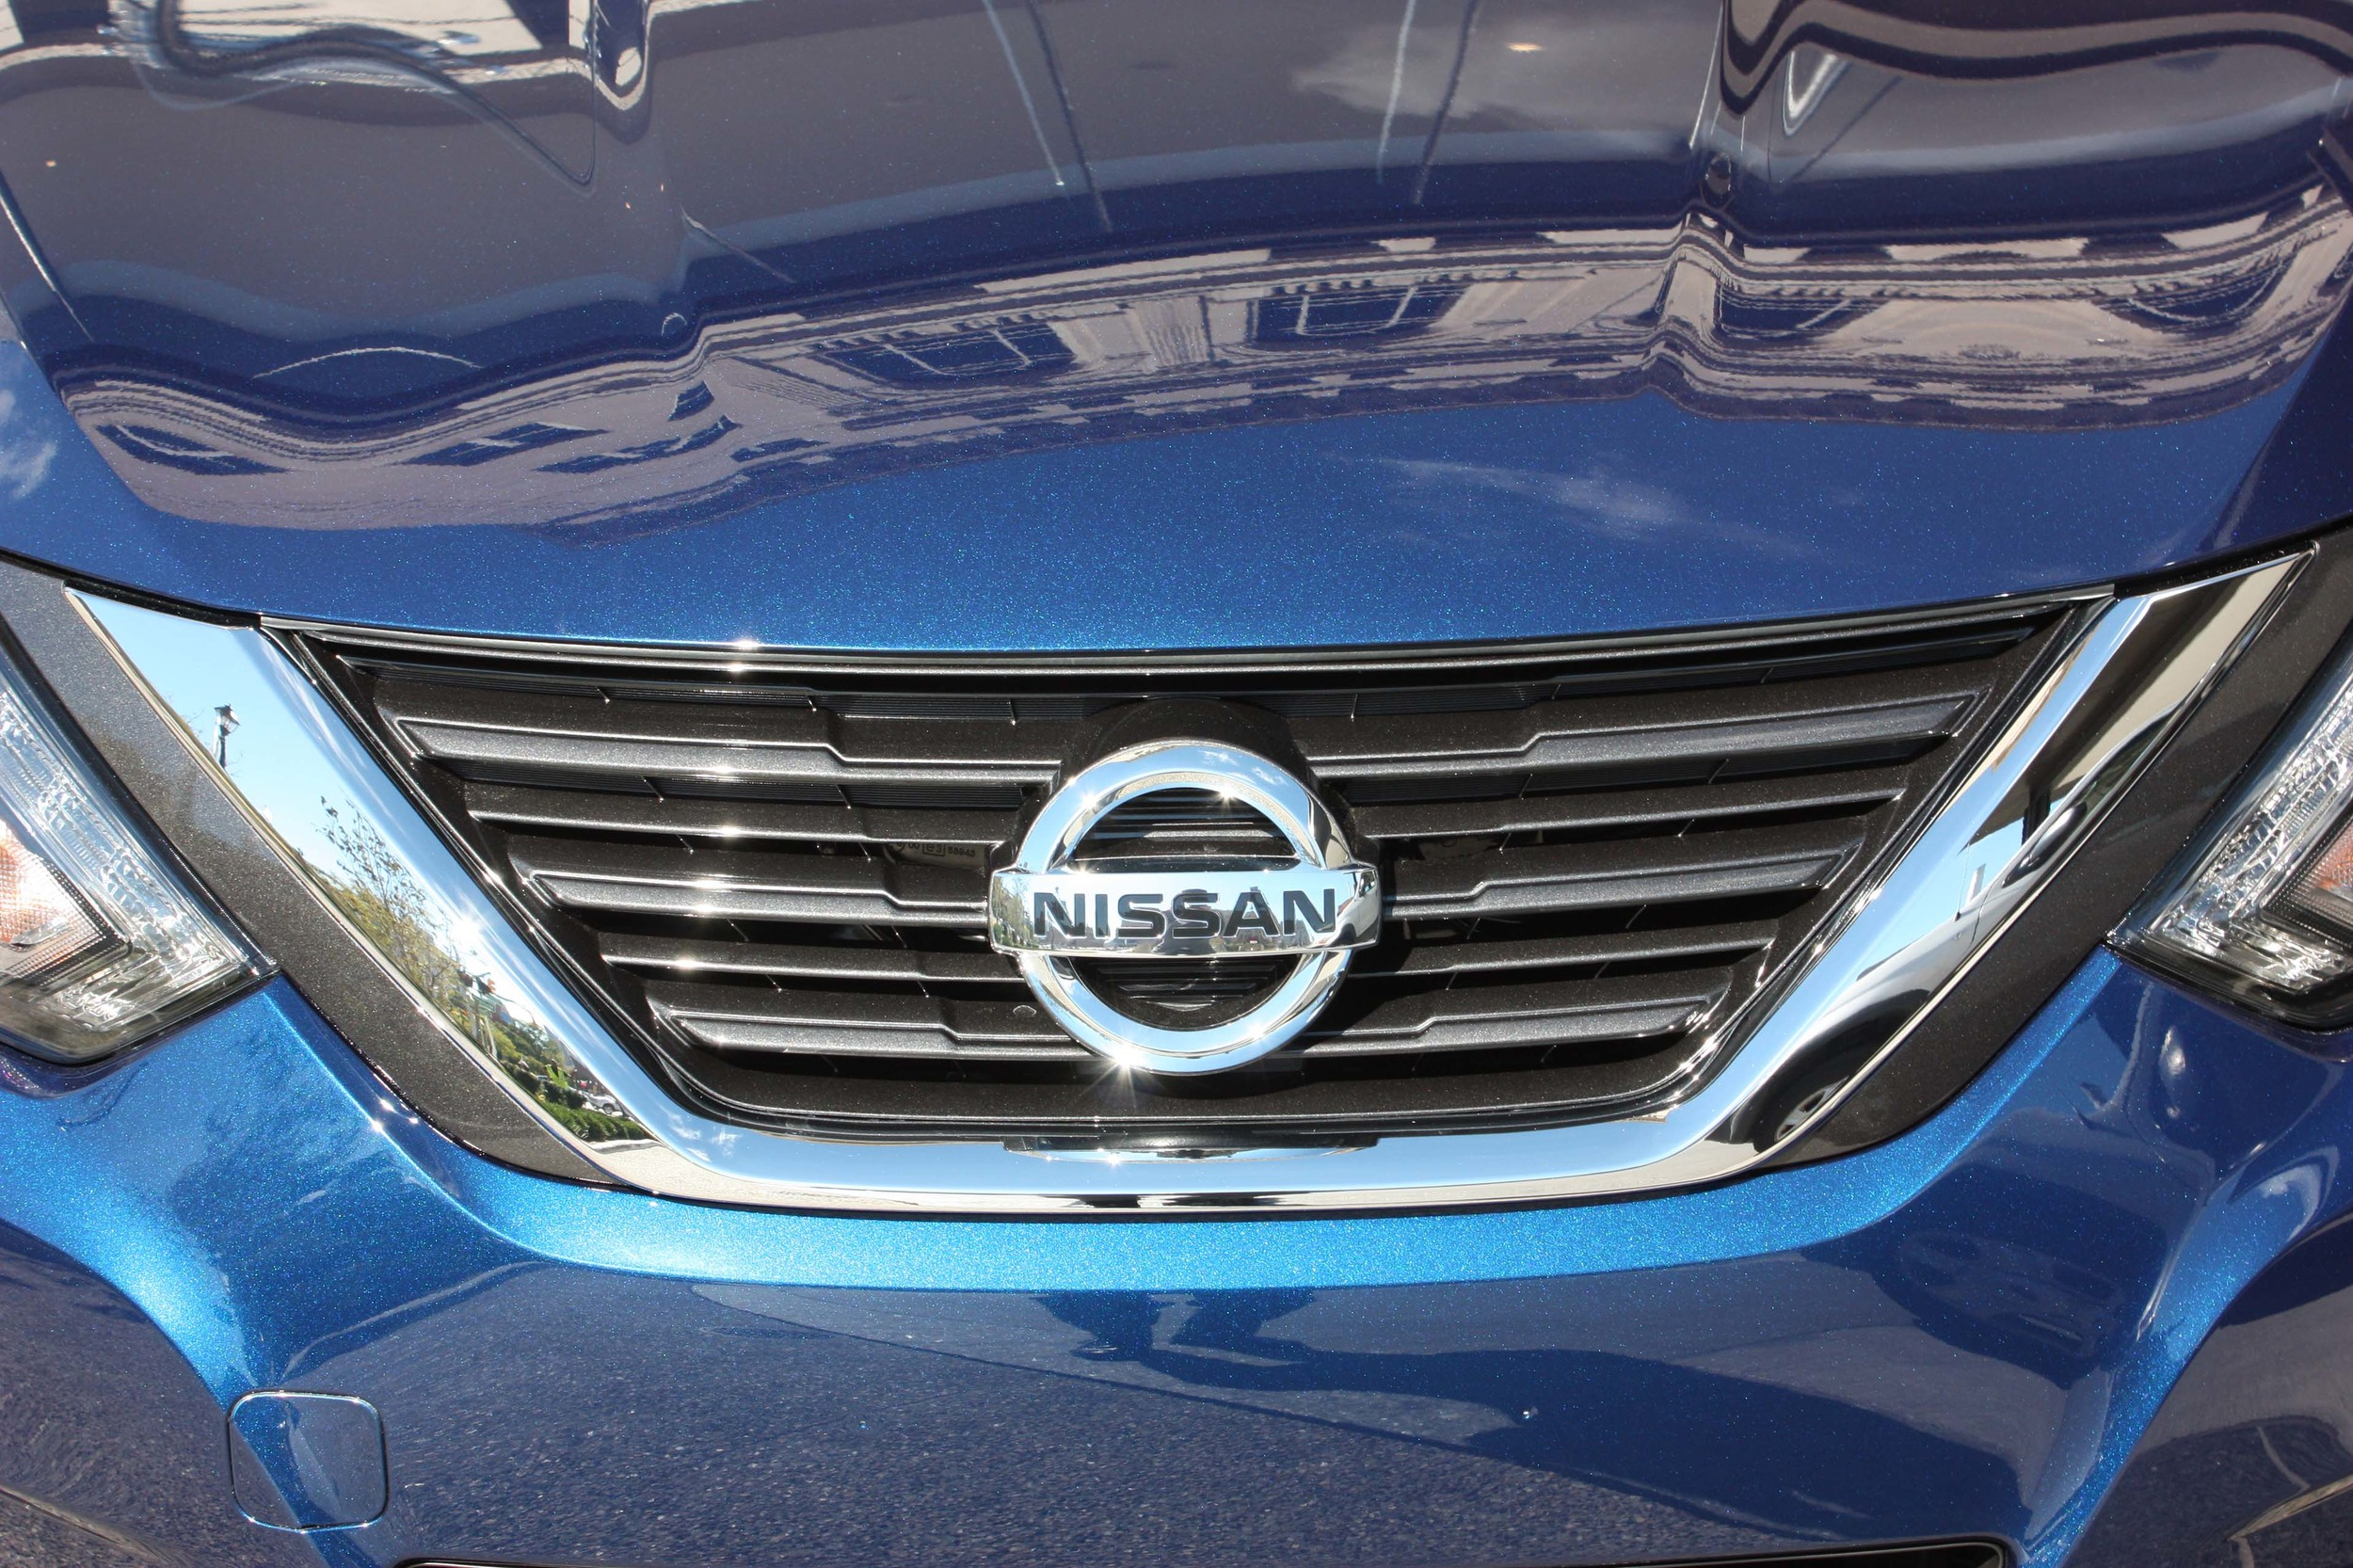 2016 Nissan Altima Exterior Grille (Photo 15 of 20)